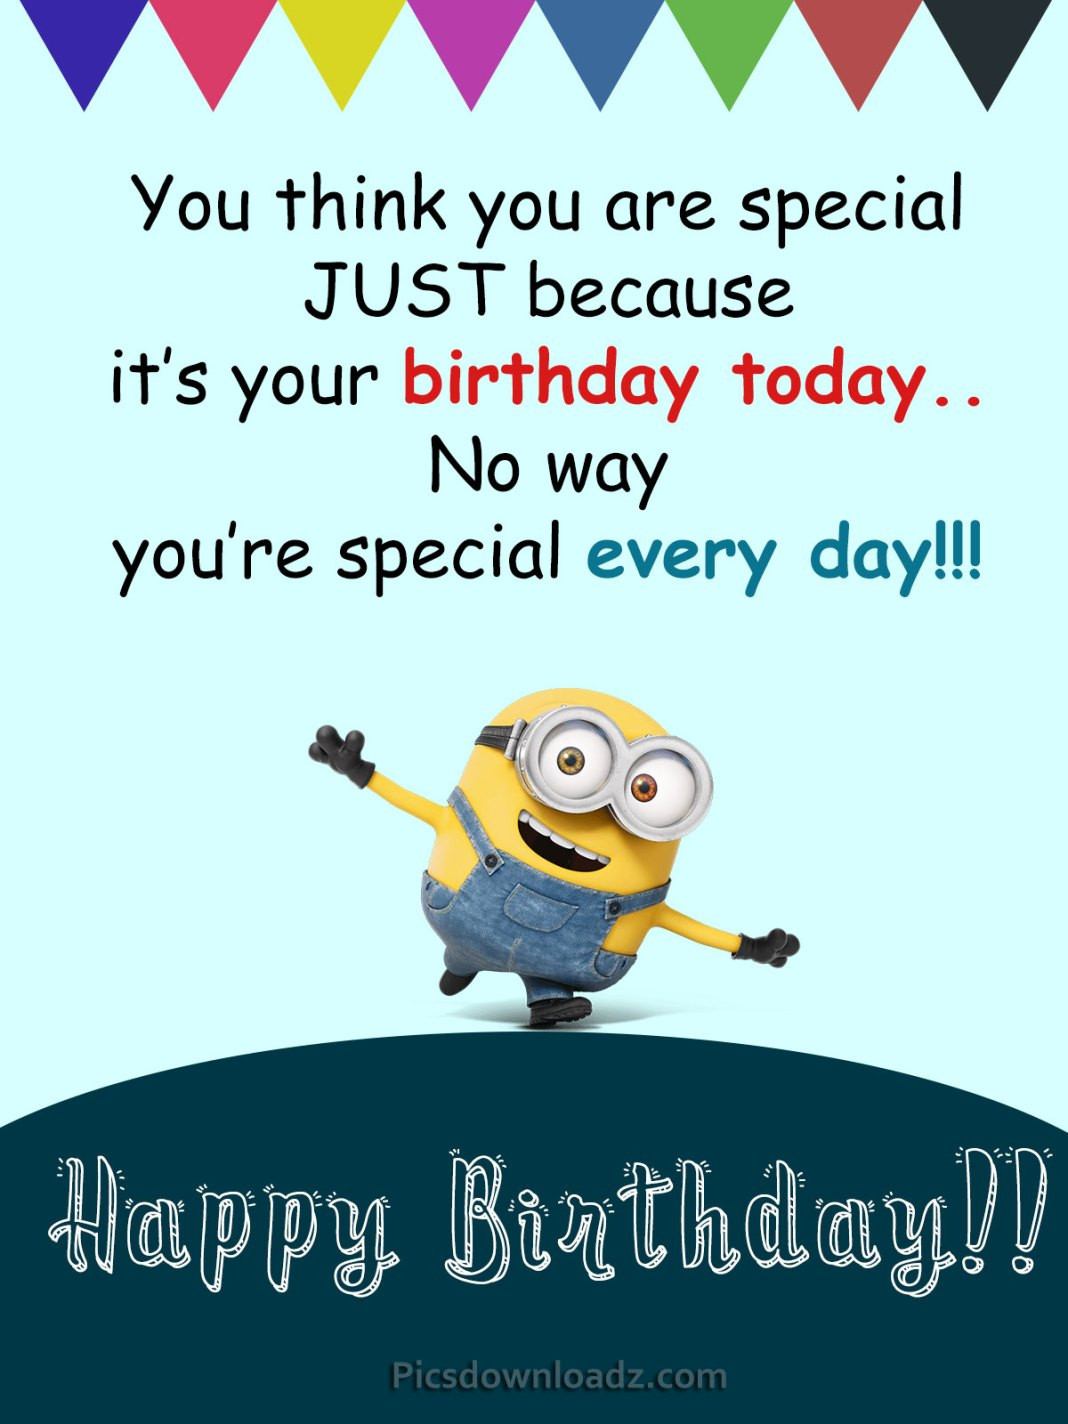 Birthday Wishes For Friend Funny  Funny Happy Birthday Wishes for Best Friend Happy